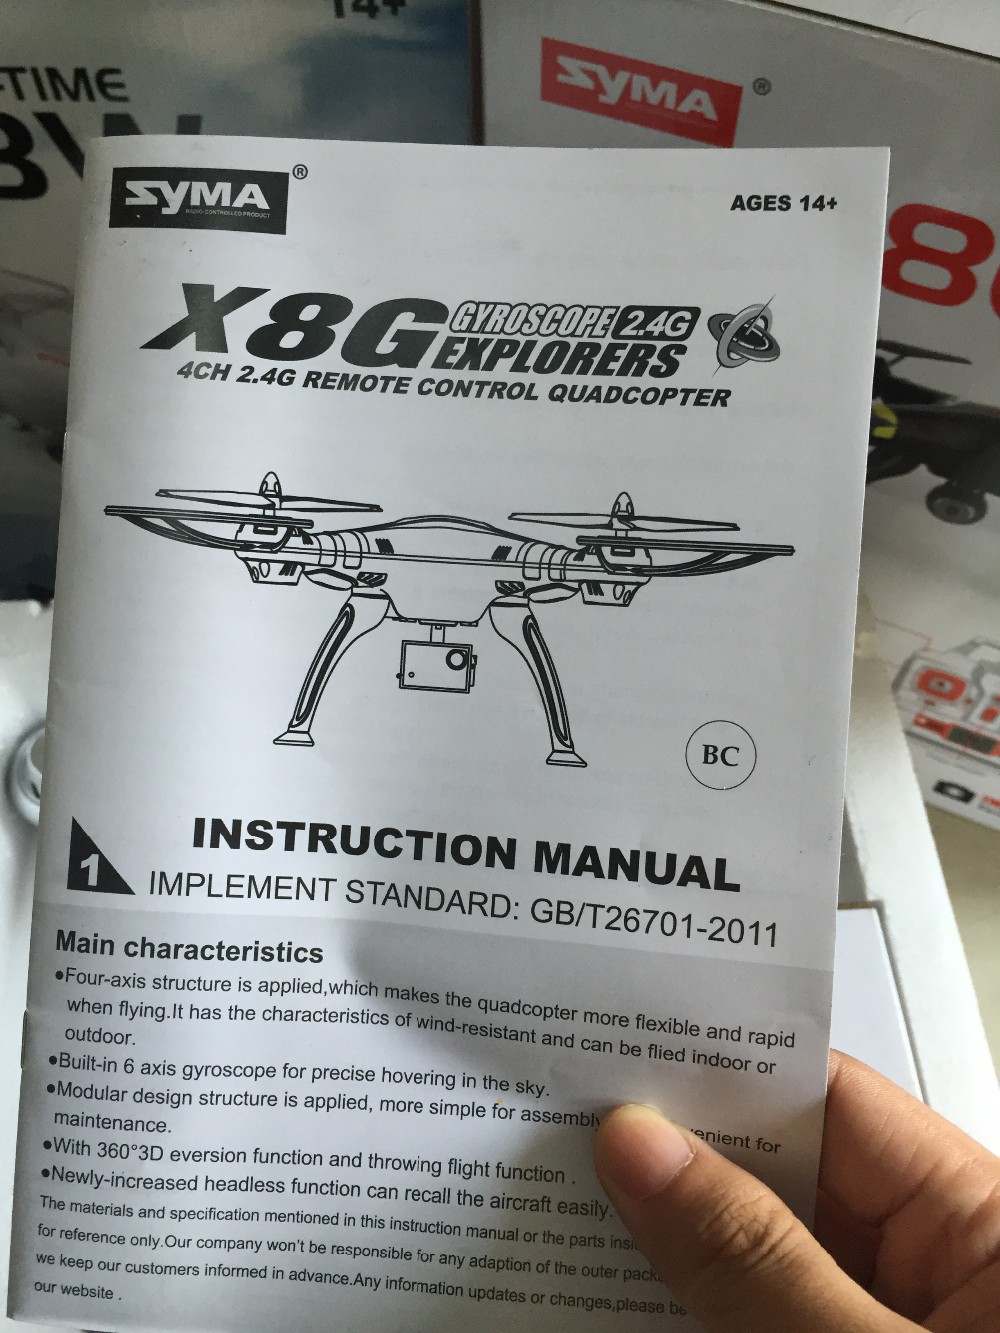 Professional Drone Syma X8c X8w X8g Quadcopter 2 4g 6 Axis Headless Mode Rc Helicopter No Camera